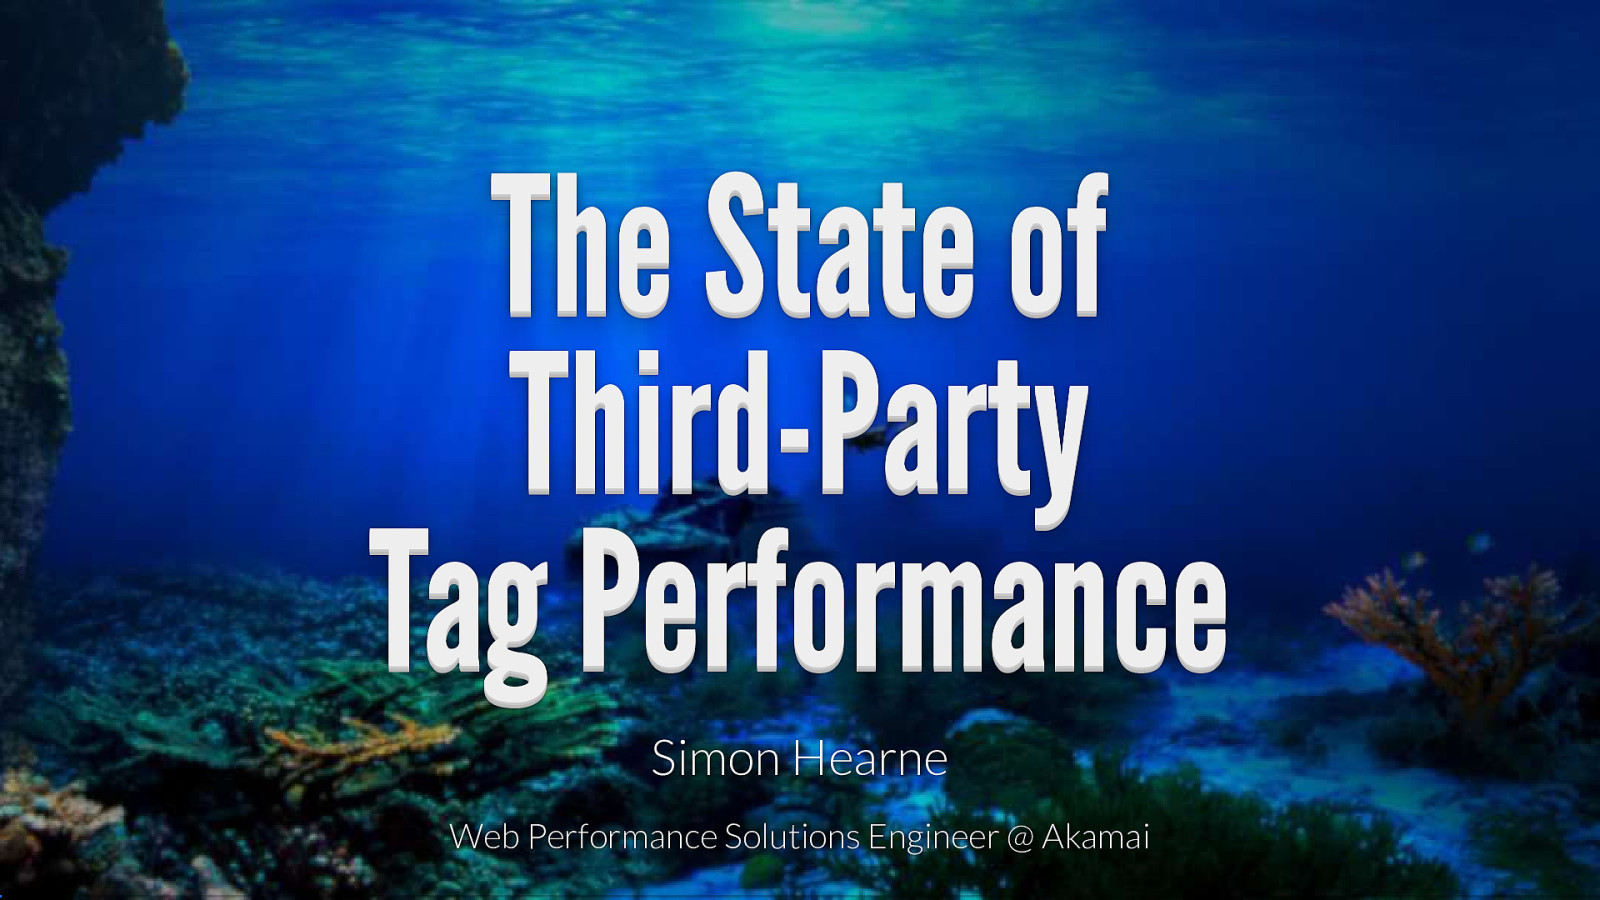 The state of third-party tag performance